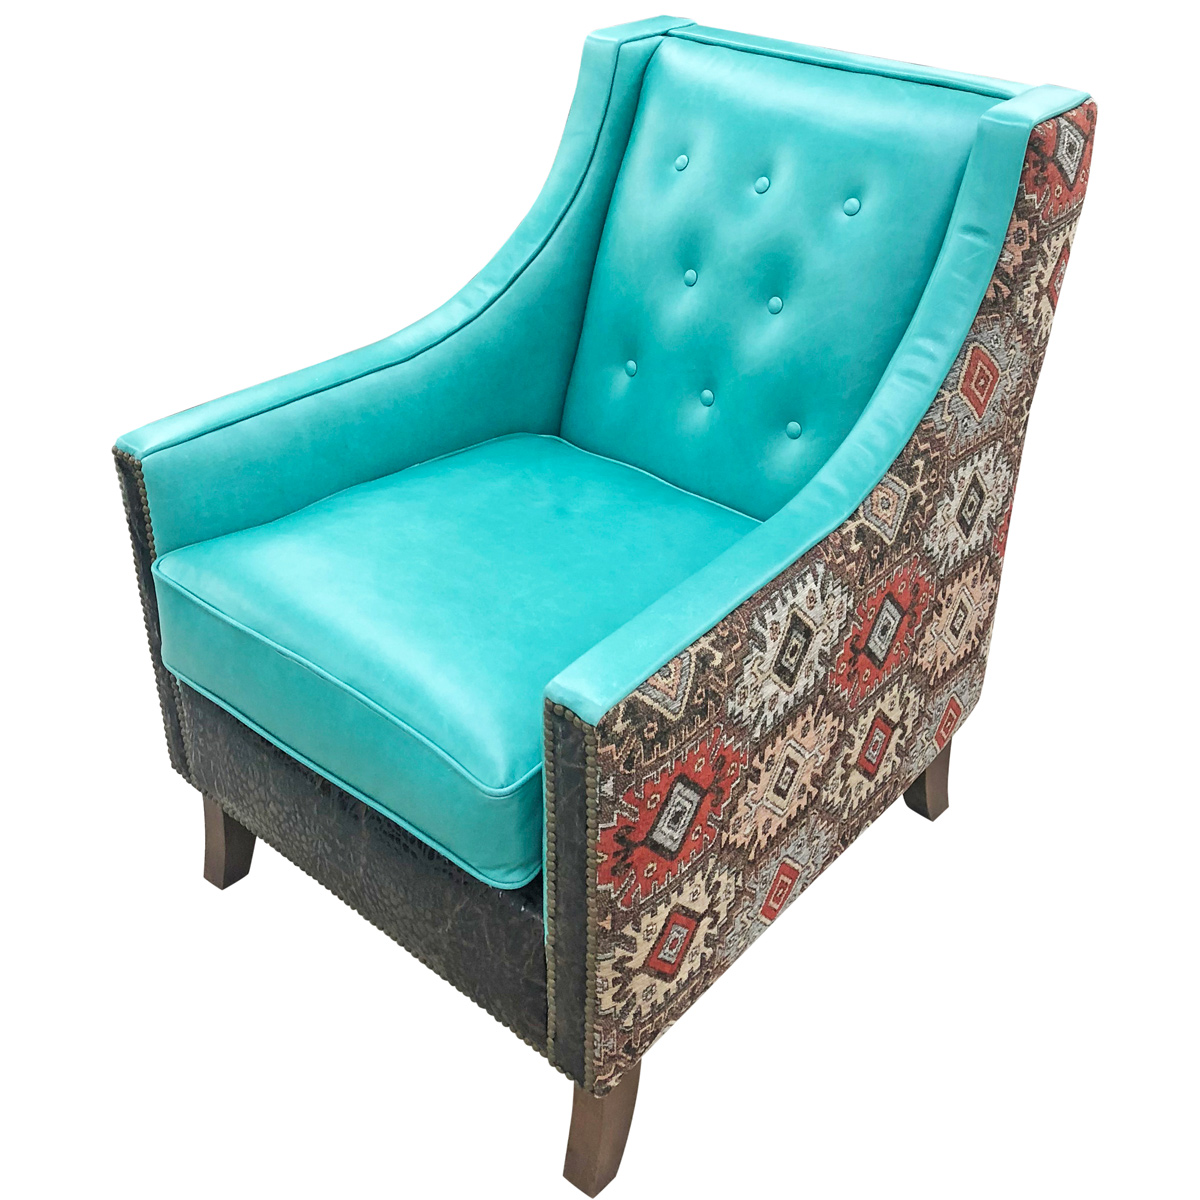 Turquoise Canyon Lounge Chair